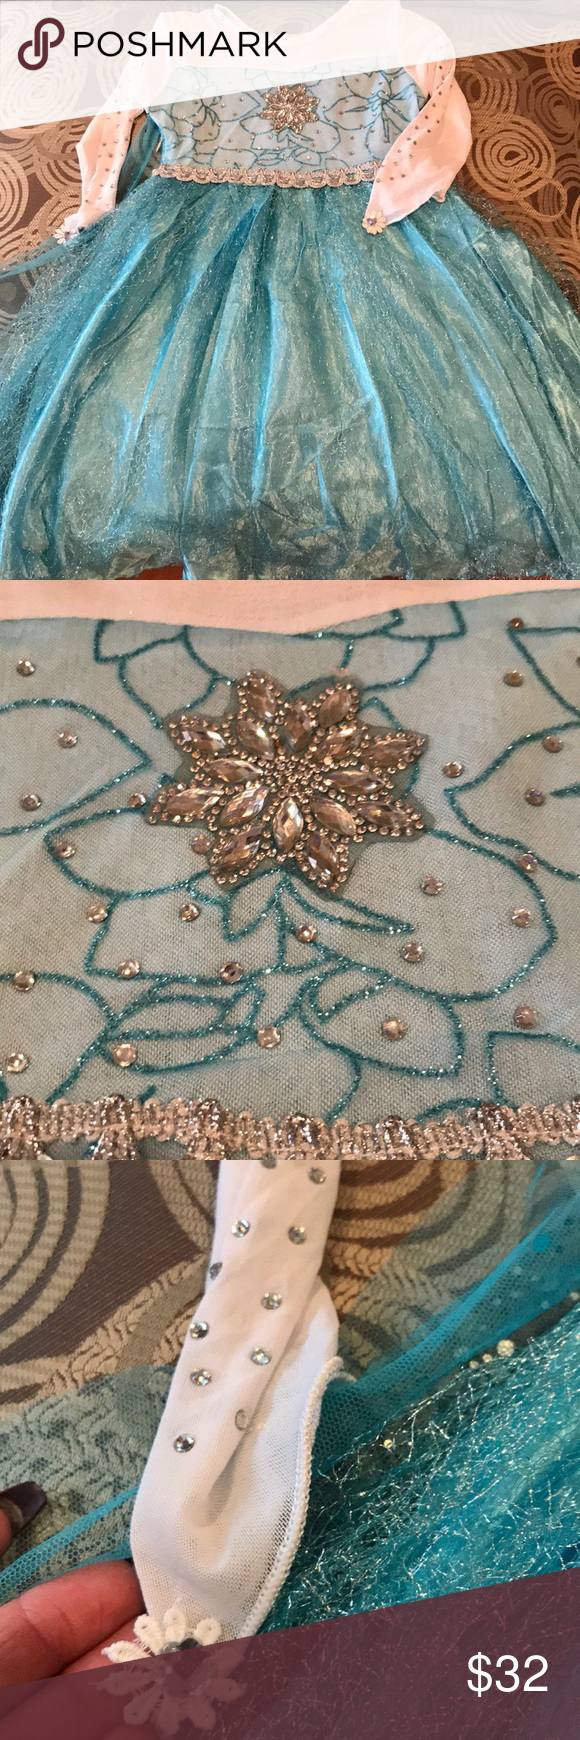 Frozen Gorgeous dress! Elsa dress in excellent condition. Soooo gorgeous in person. Embellishments throughout. Costumes